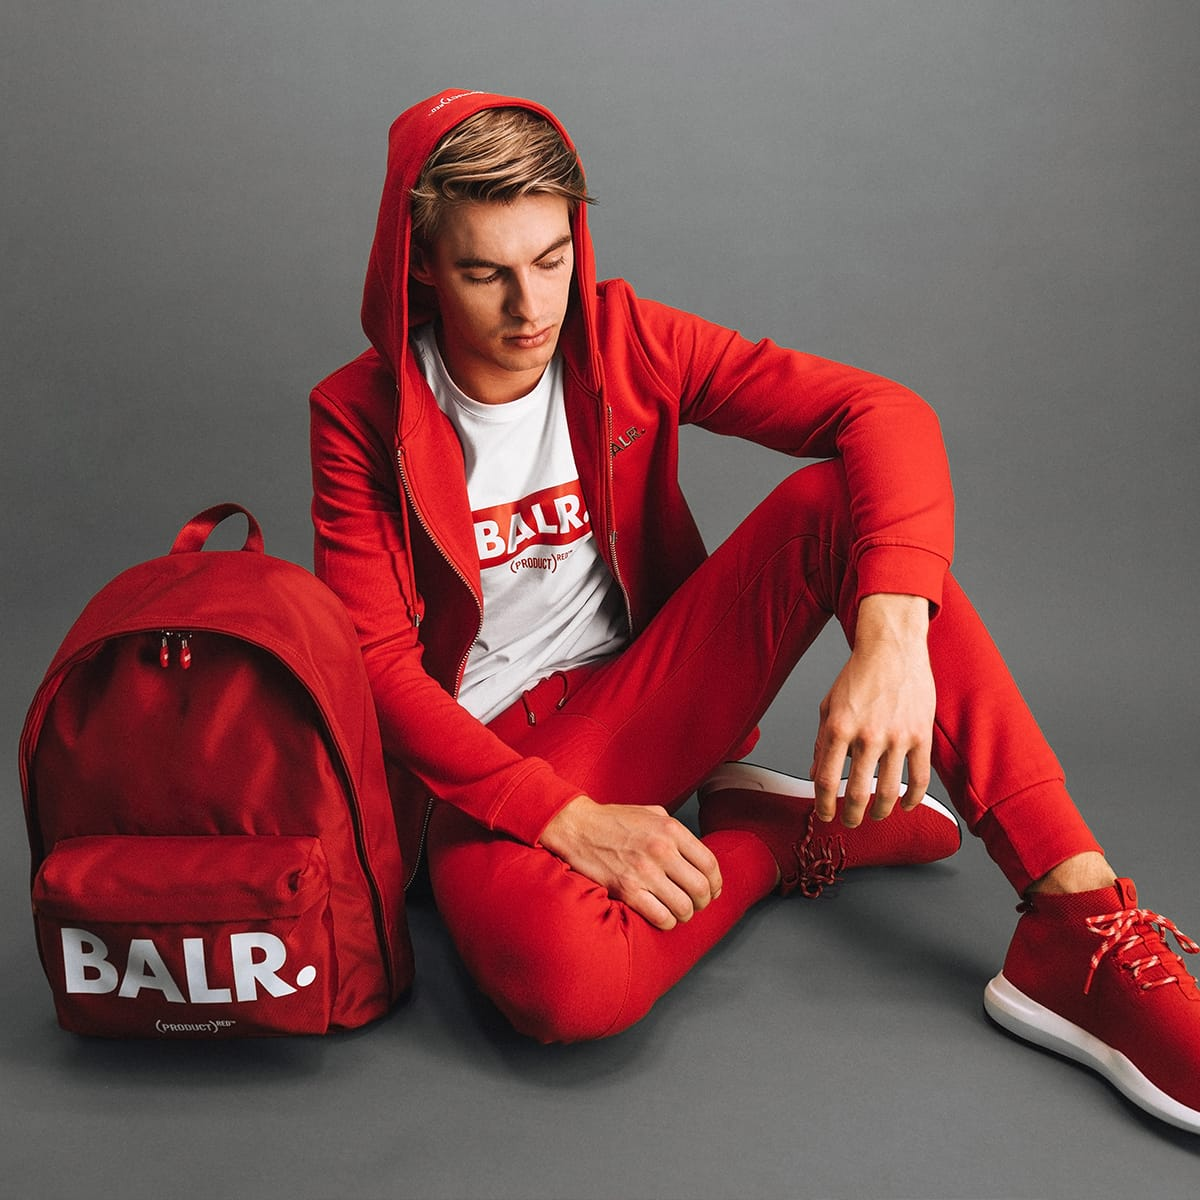 The (BALR.)<sup>RED</sup> capsule collection is here